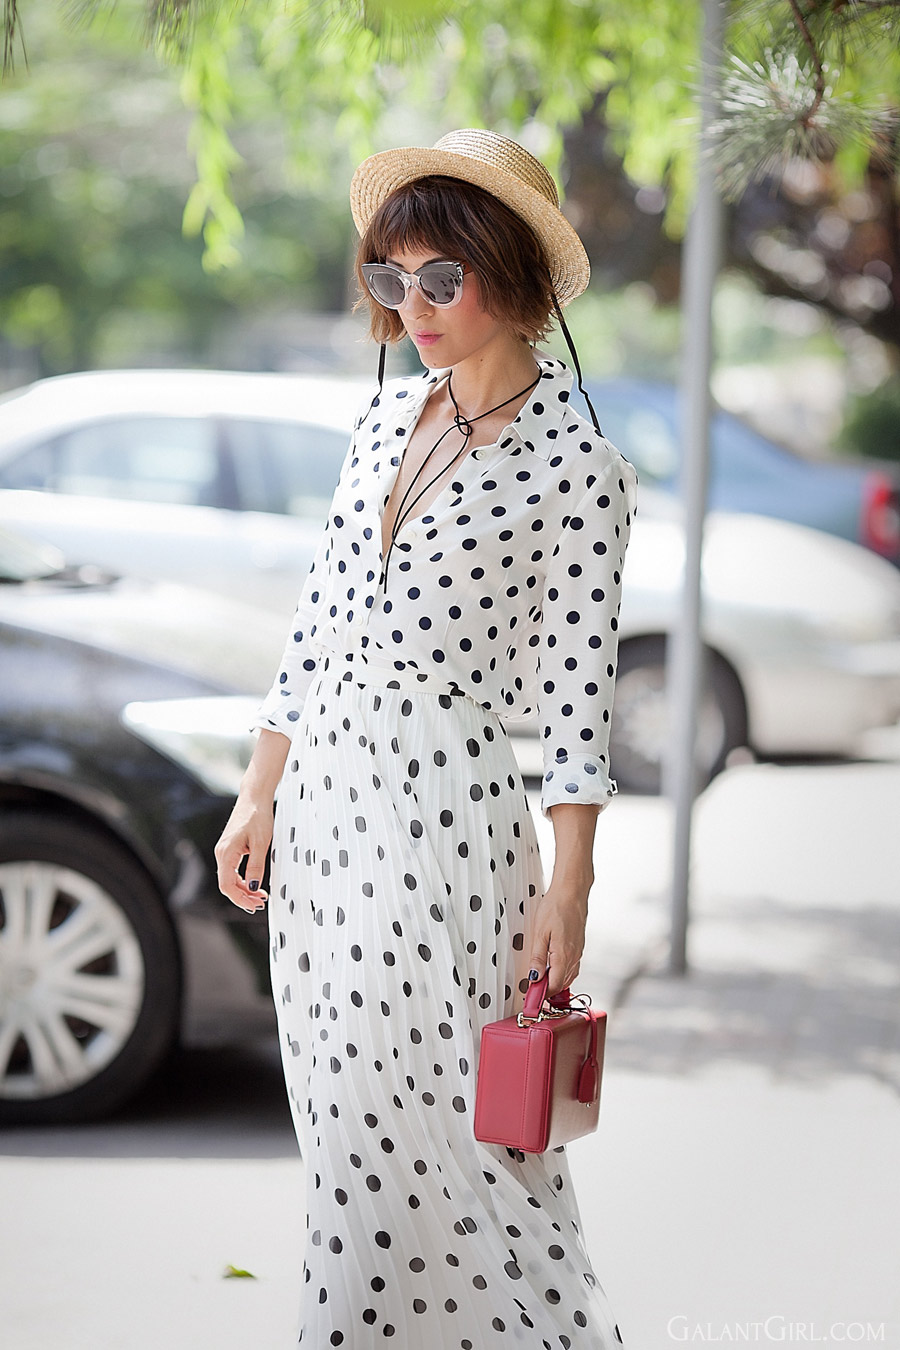 total-polka-dots-for-summer-outfit-ideas